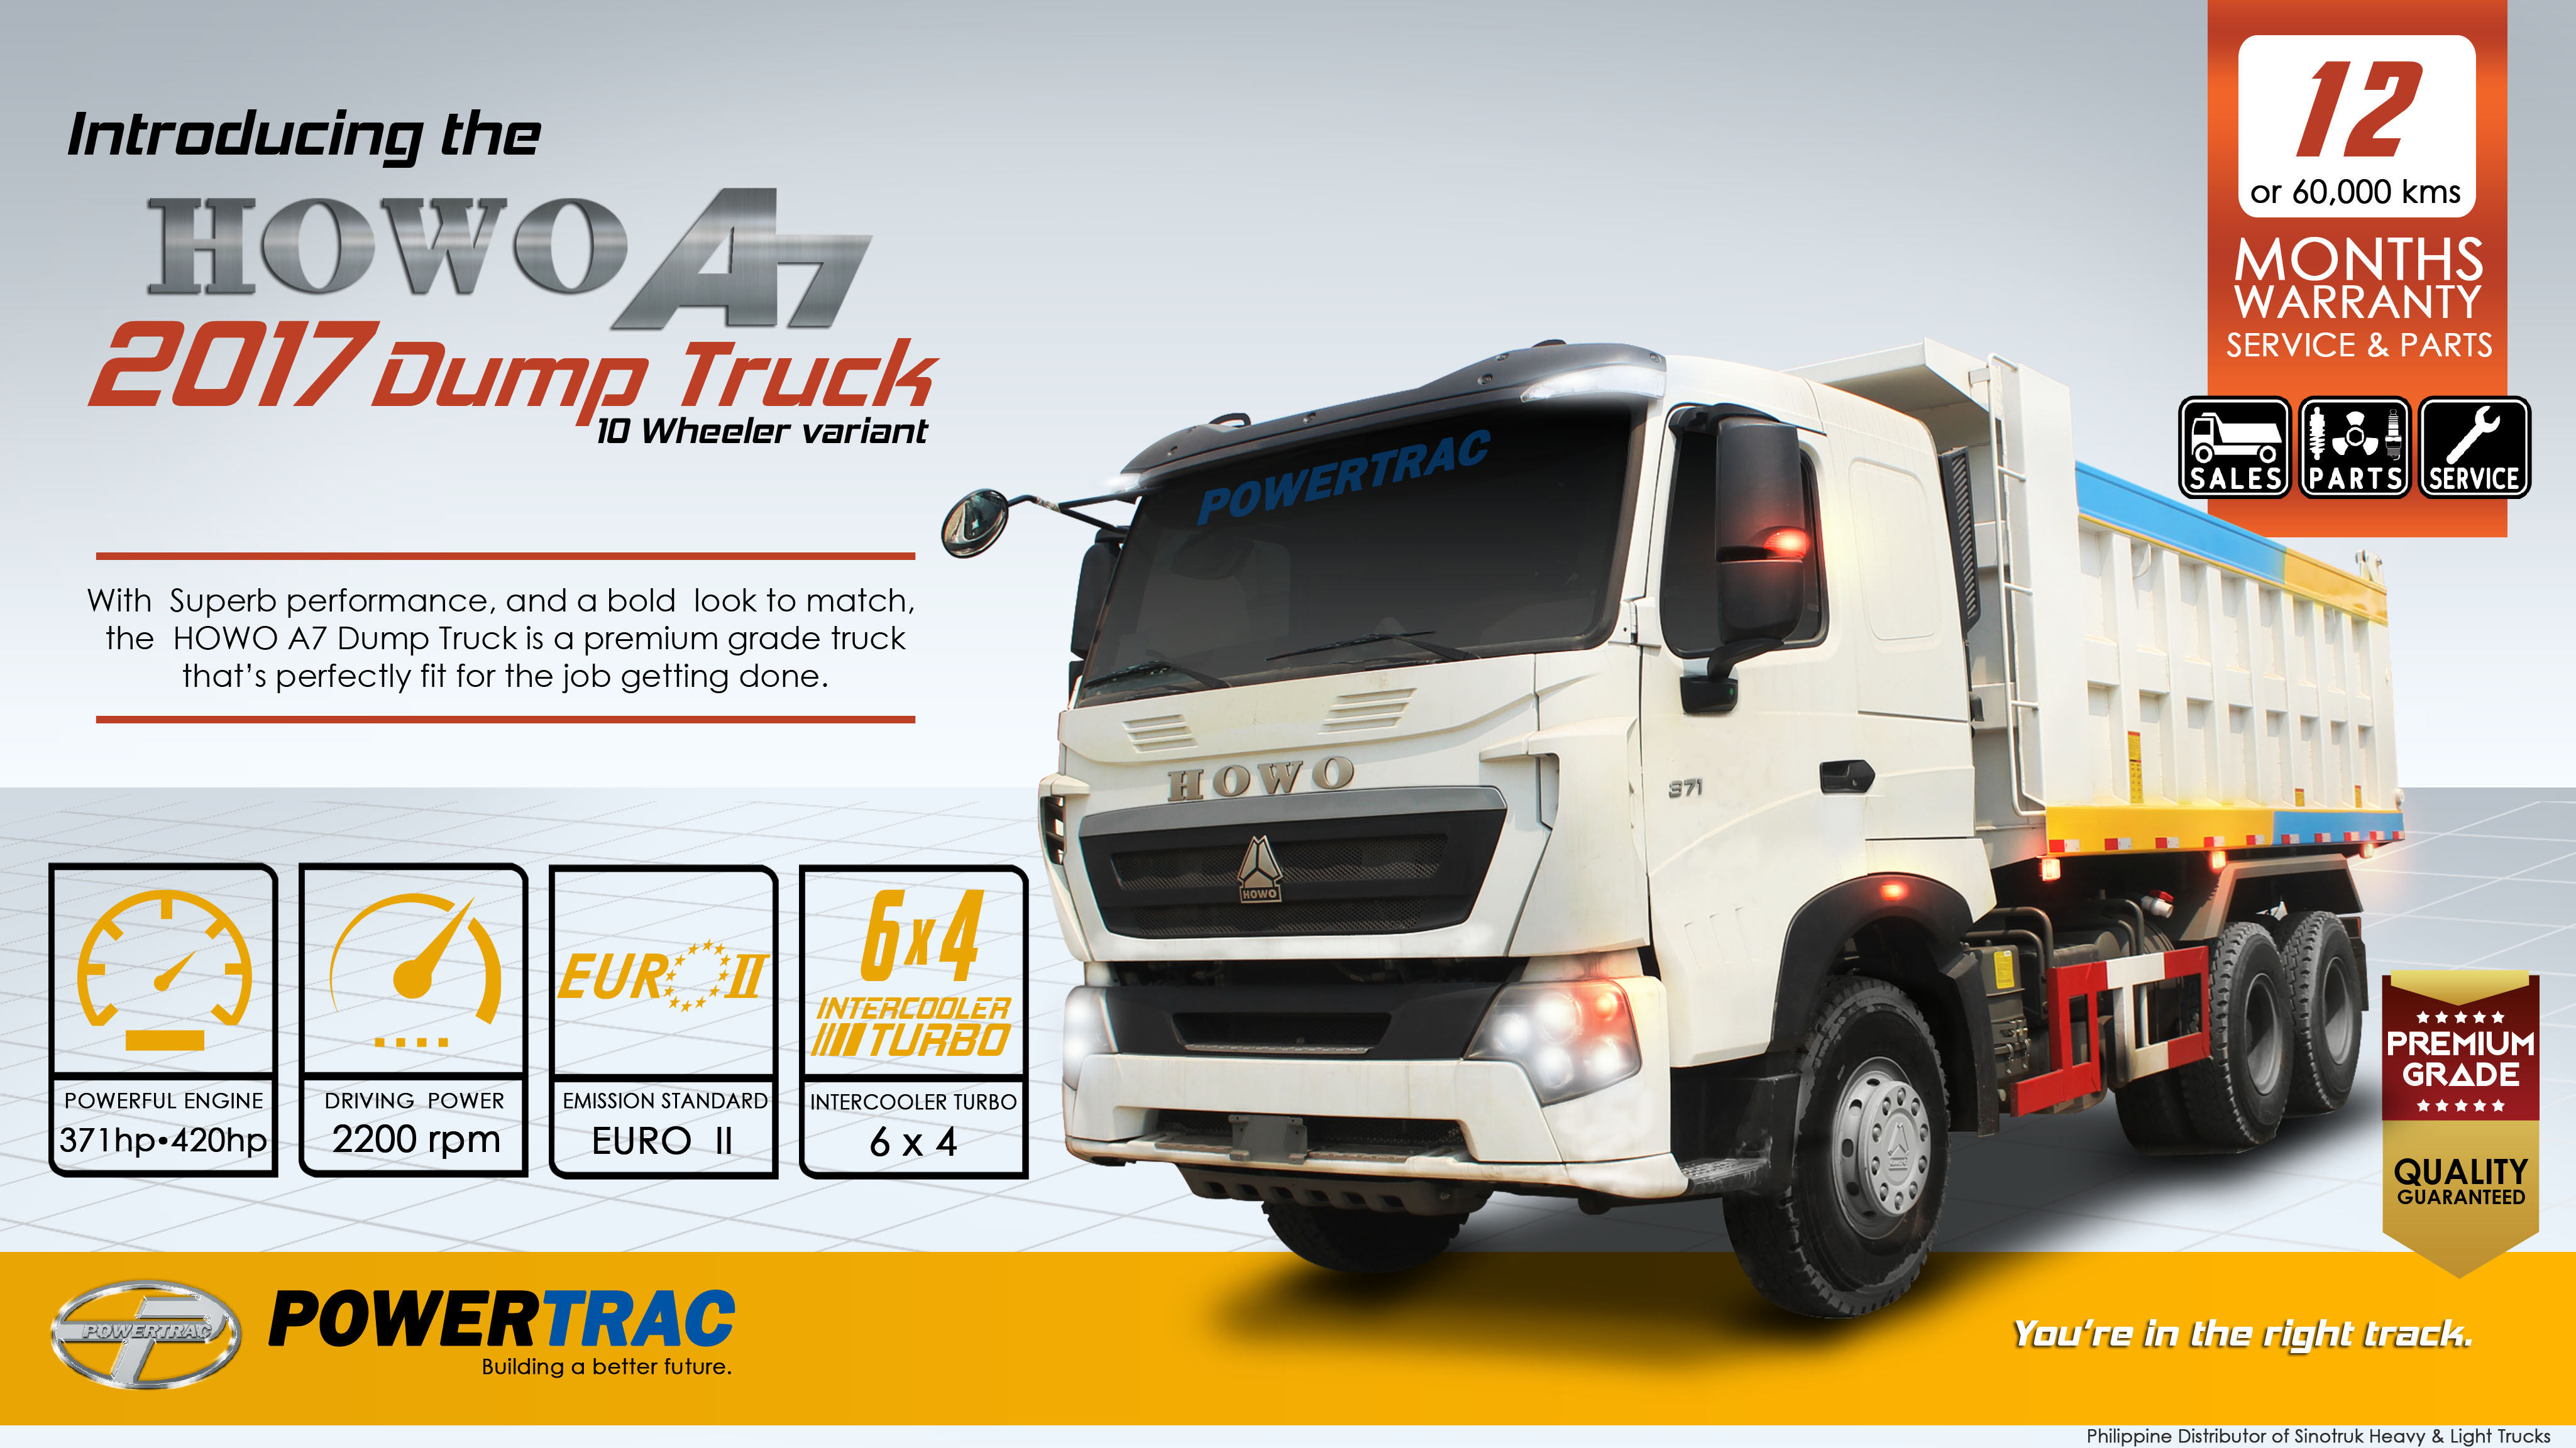 howo a7 2017 dump truck 10 wheelernew product powertrac